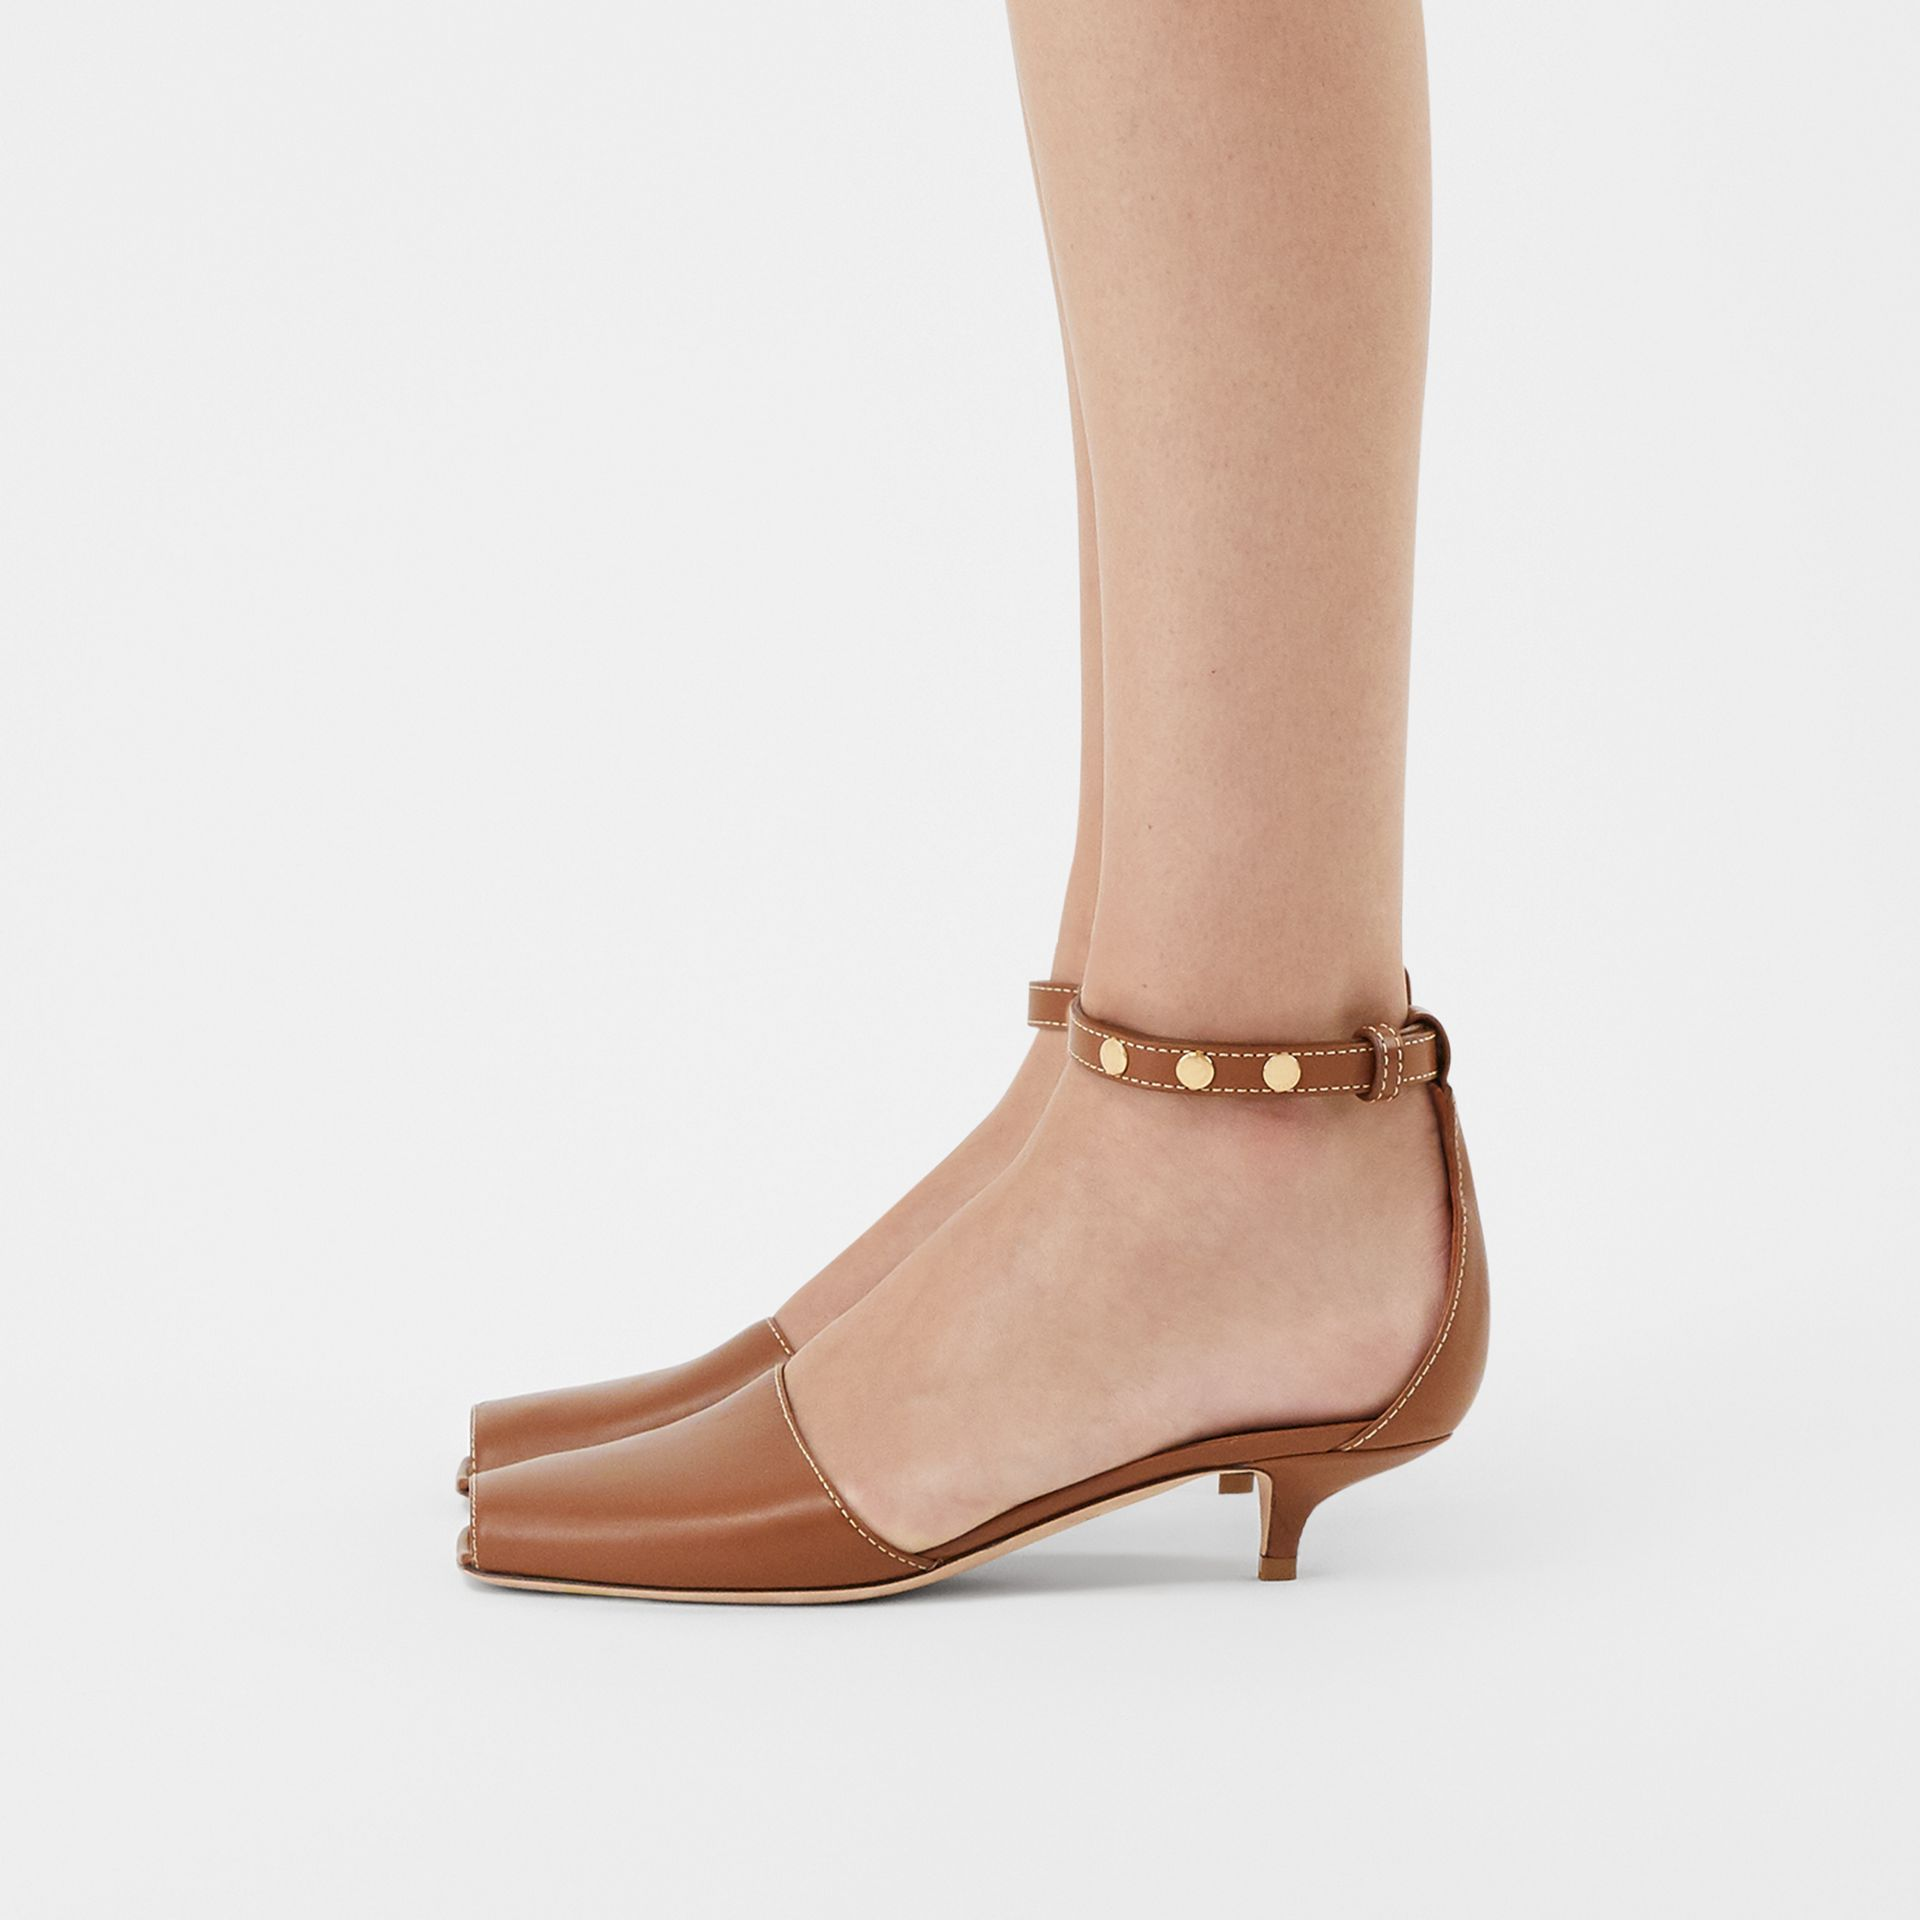 Triple Stud Leather Kitten-heel Sandals in Tan - Women | Burberry - gallery image 2